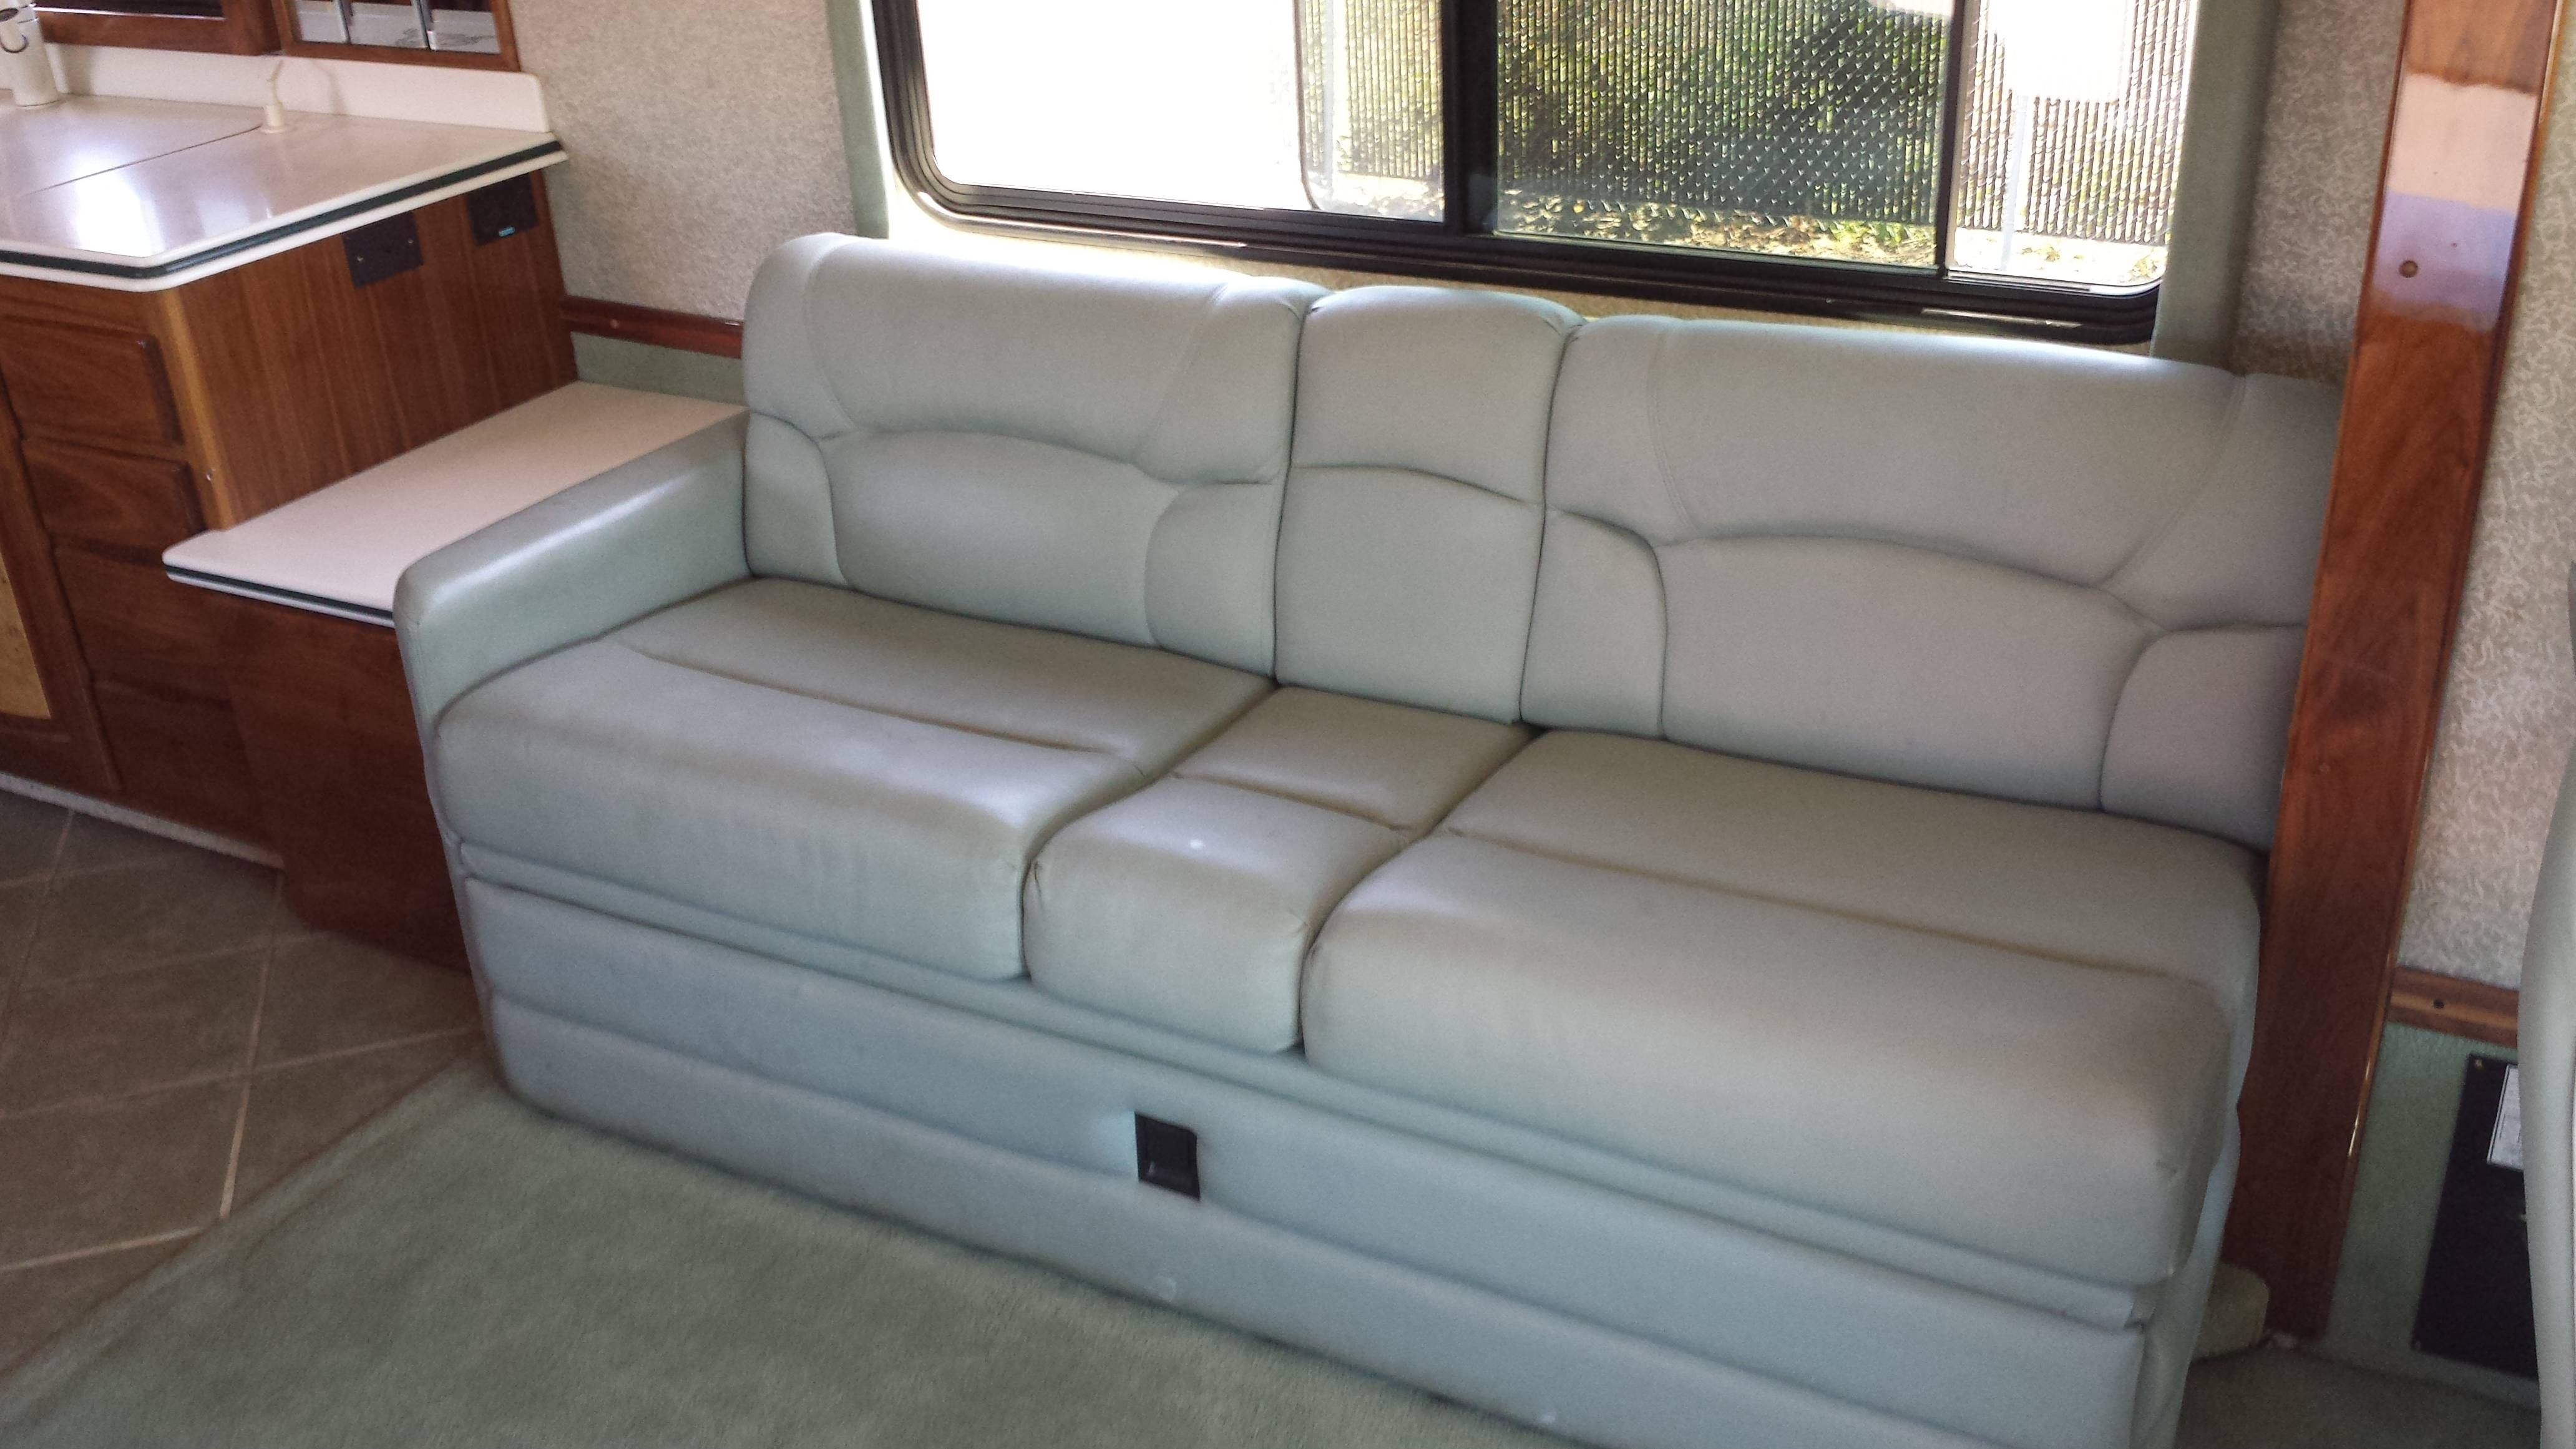 Rv Jackknife Sofa 70 With Rv Jackknife Sofa | Jinanhongyu throughout Rv Jackknife Sofas (Image 10 of 15)